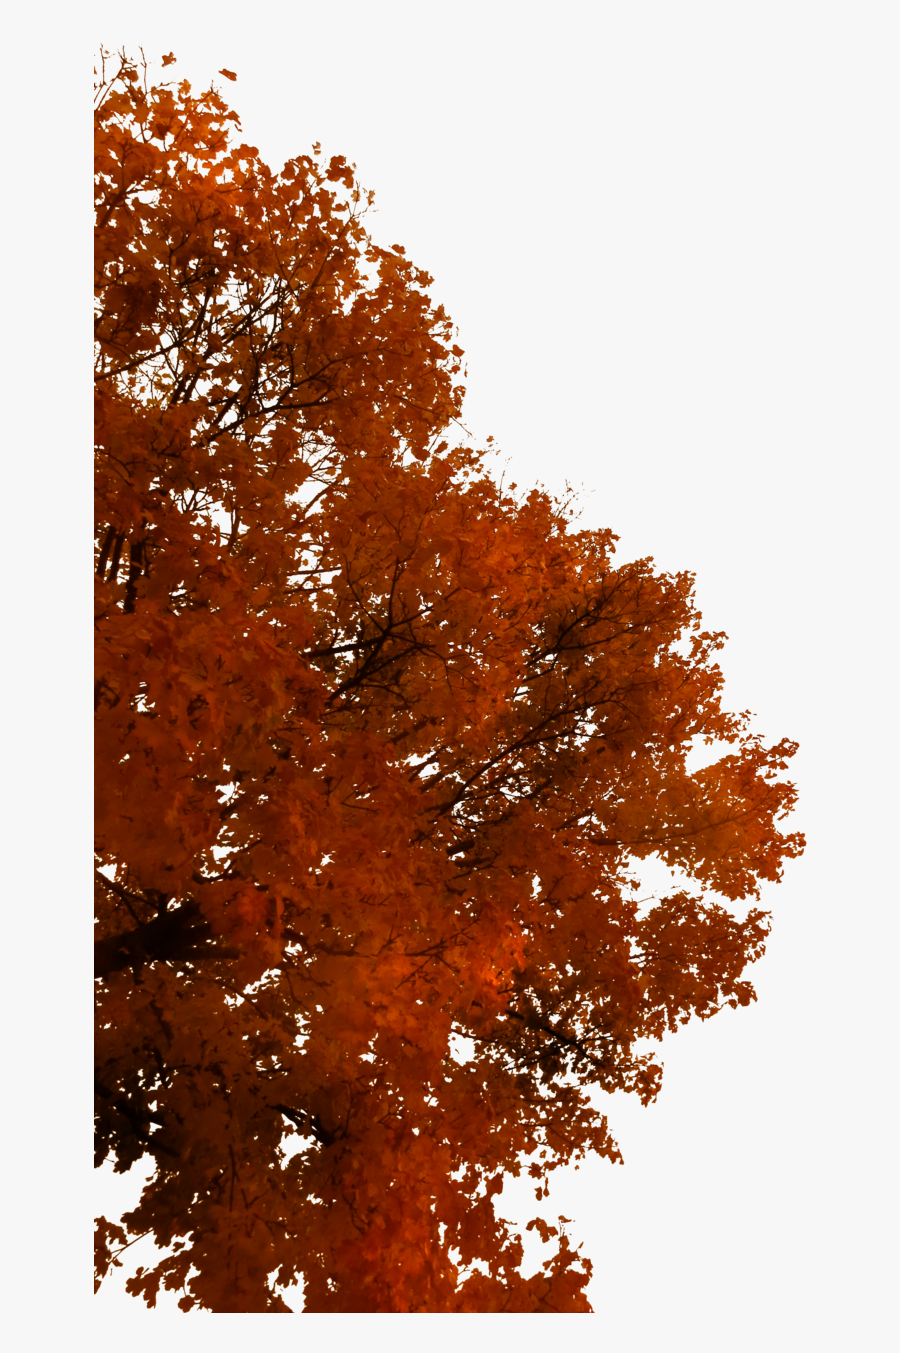 Tree Autumn Branch - Autumn Tree Branch Png, Transparent Clipart